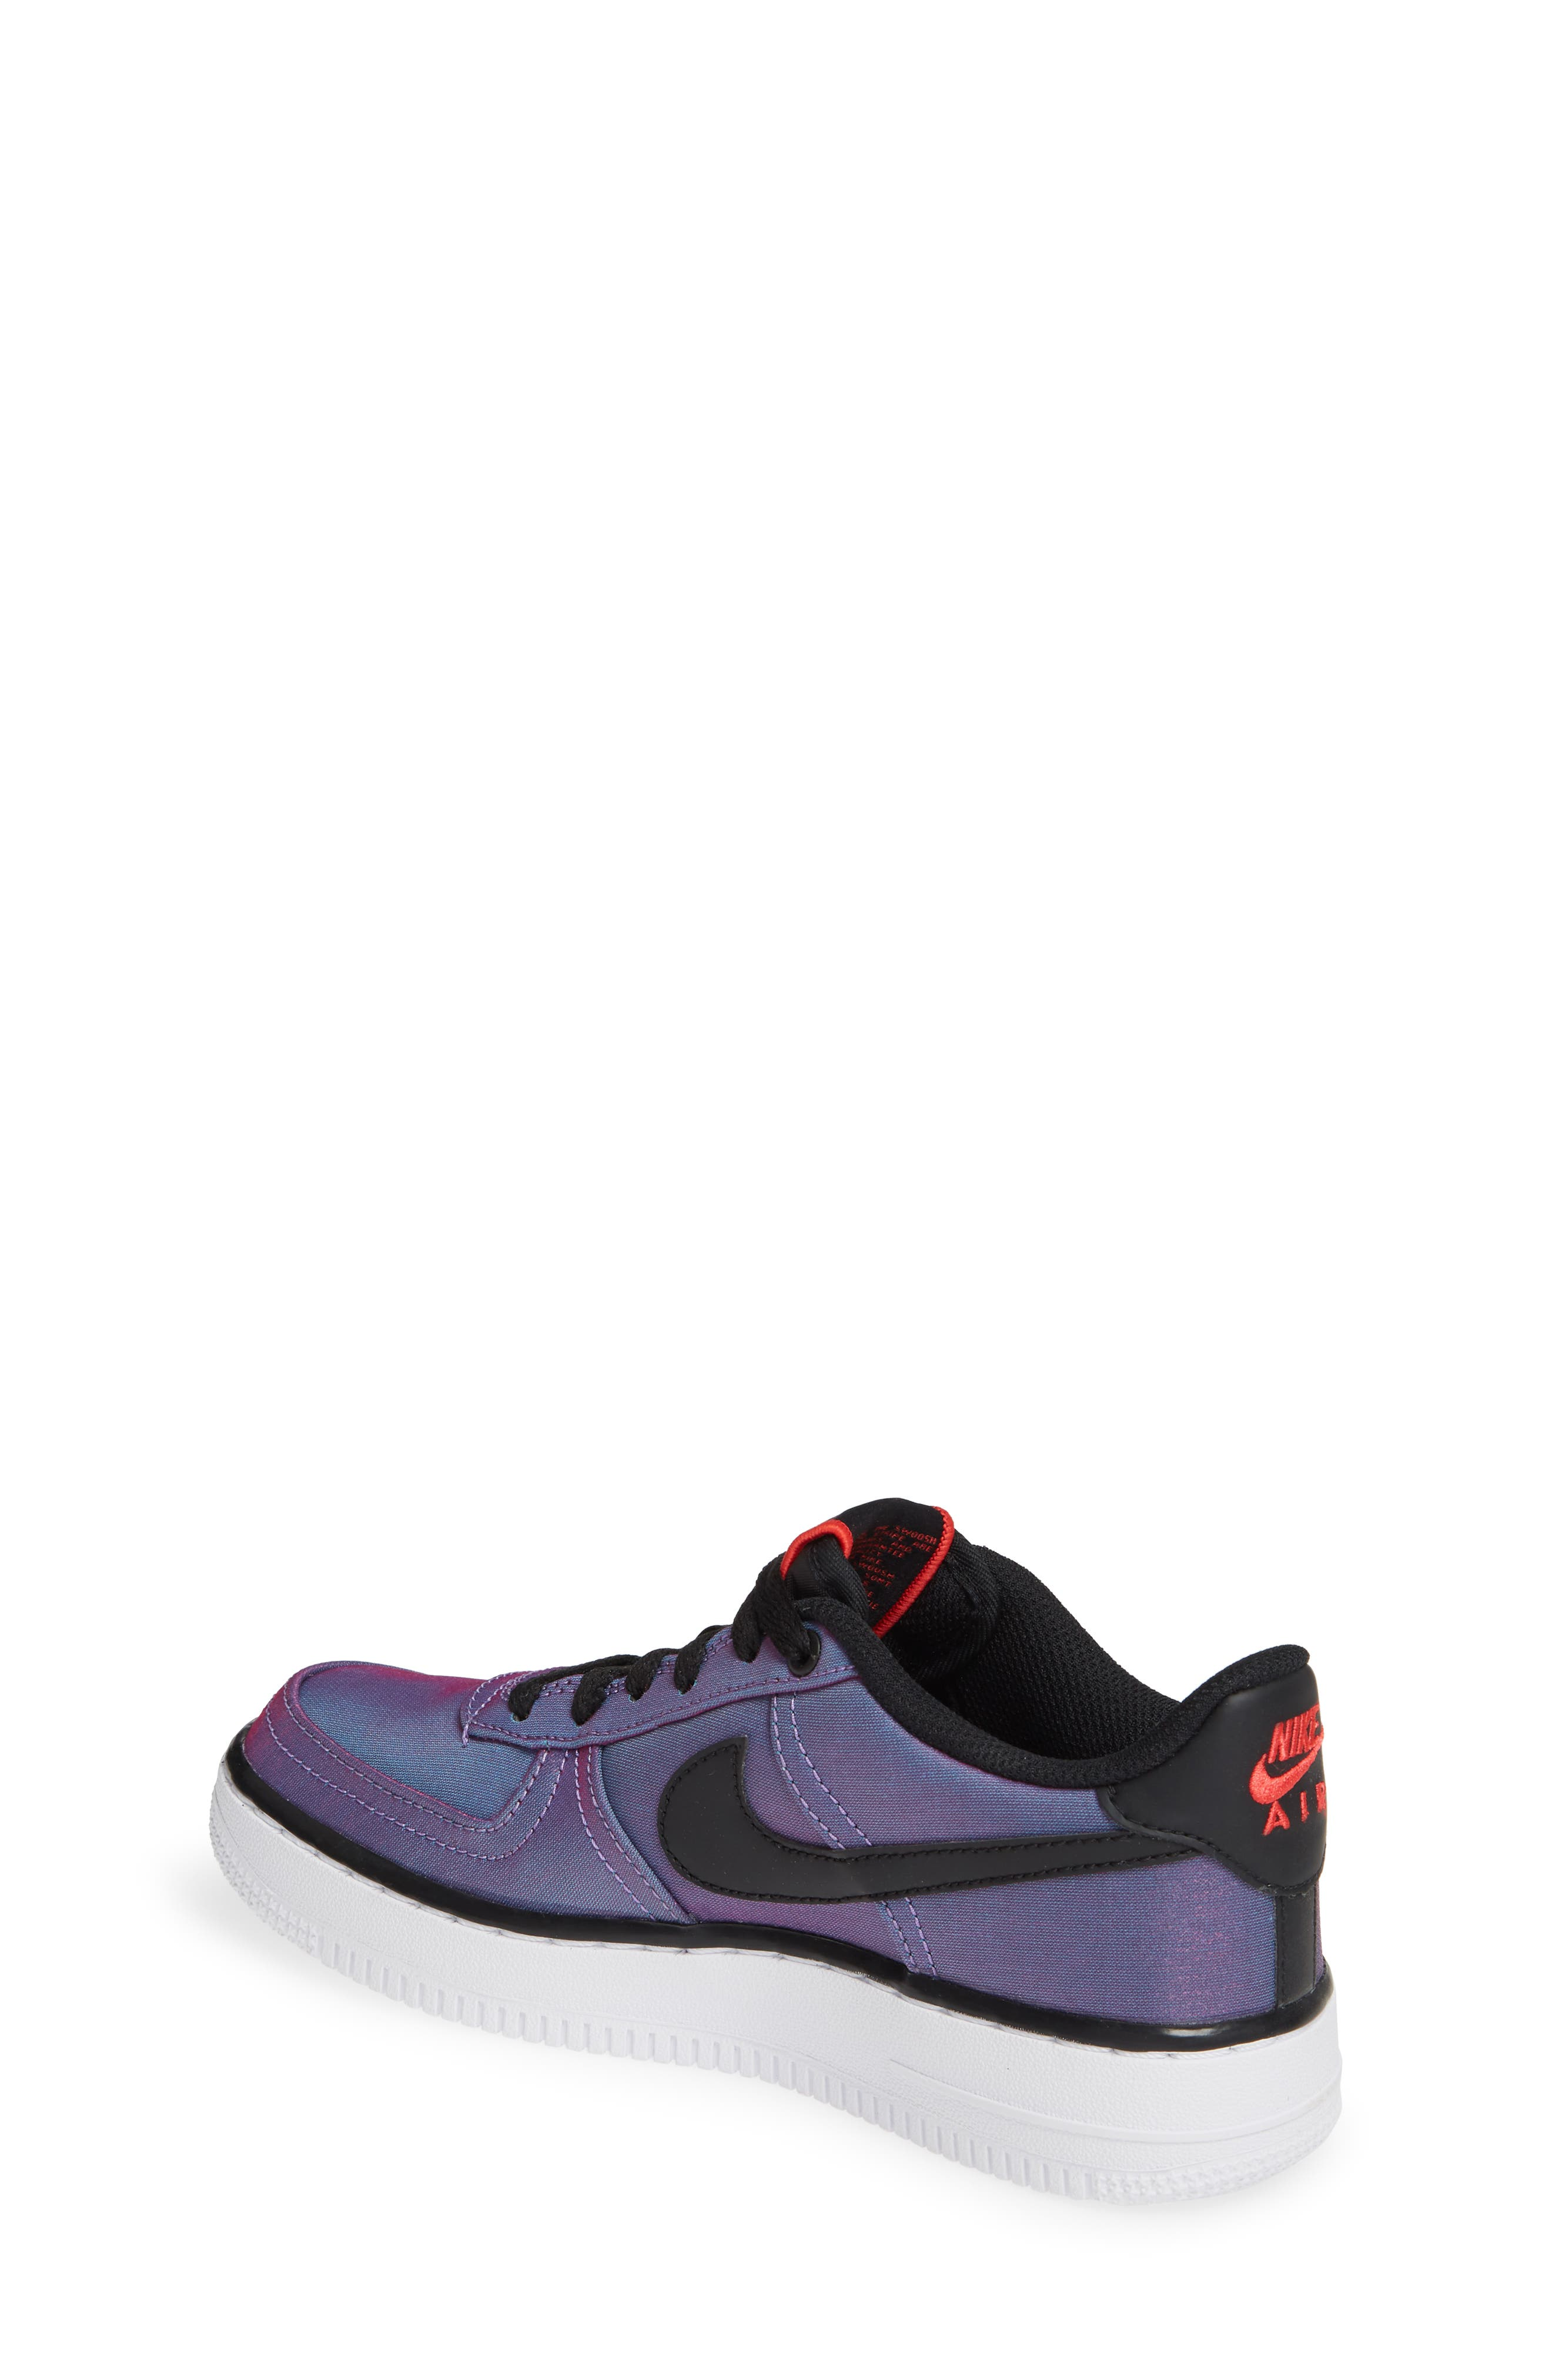 classic fit c7e02 0b411 Nike Shoes for Kids Purple   Nordstrom   Nordstrom